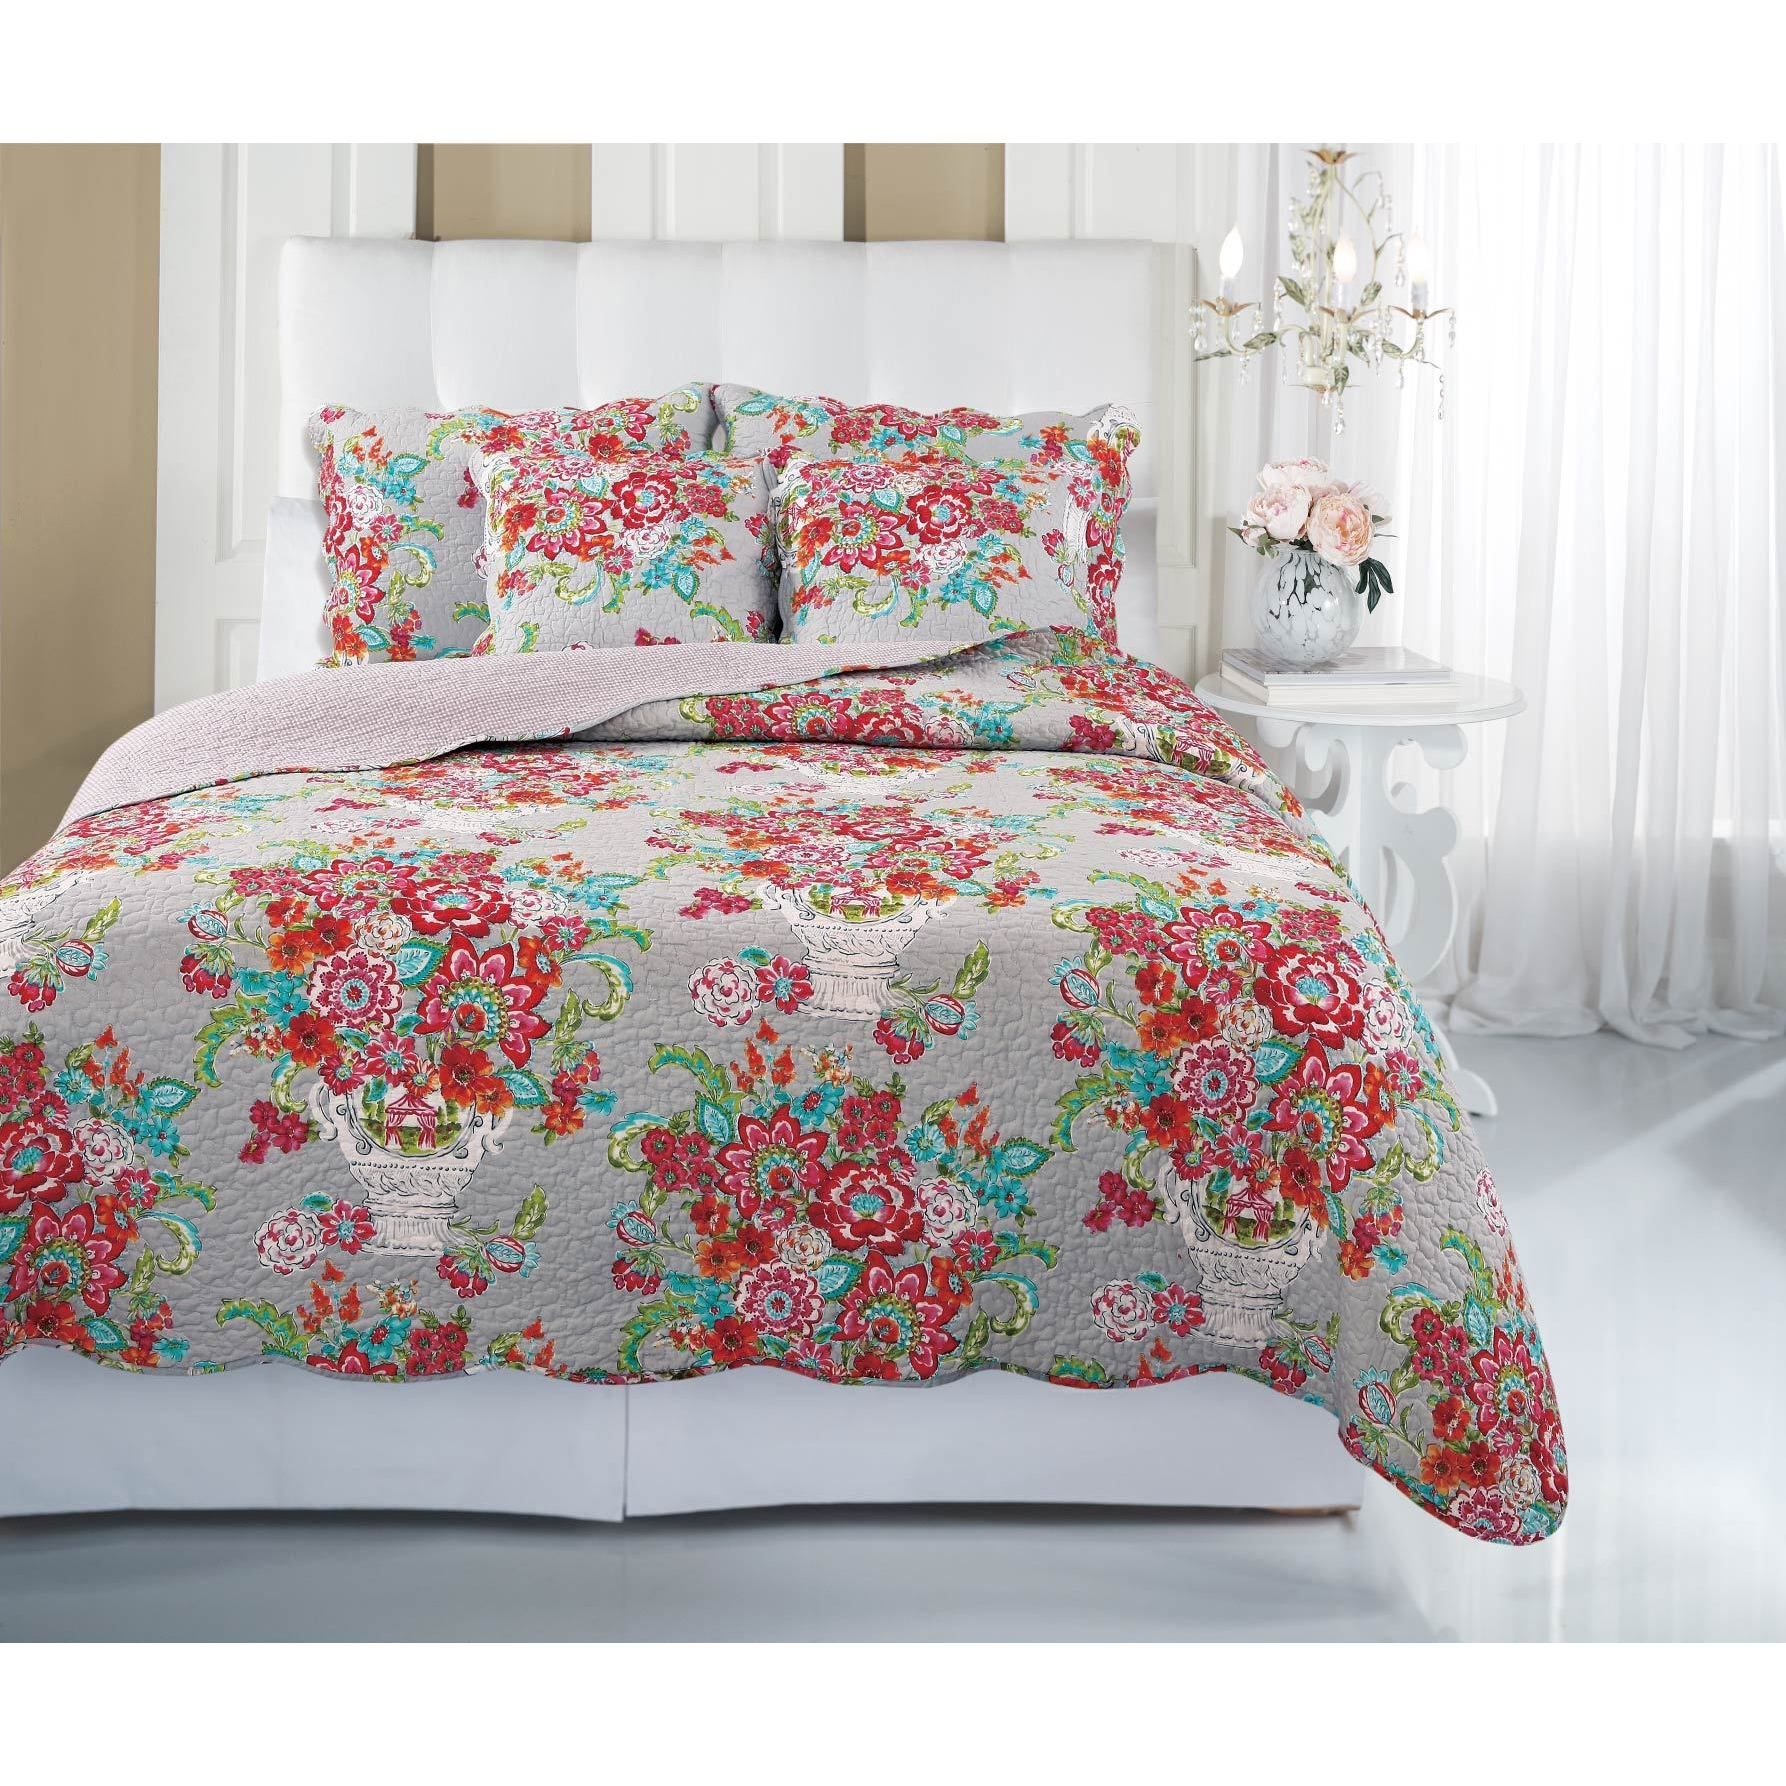 Add sweet elegance into your home with the Blissful Bouquet quilt set. A lovely floral pattern adds soft beauty that you'll love in your bedroom for years to come.